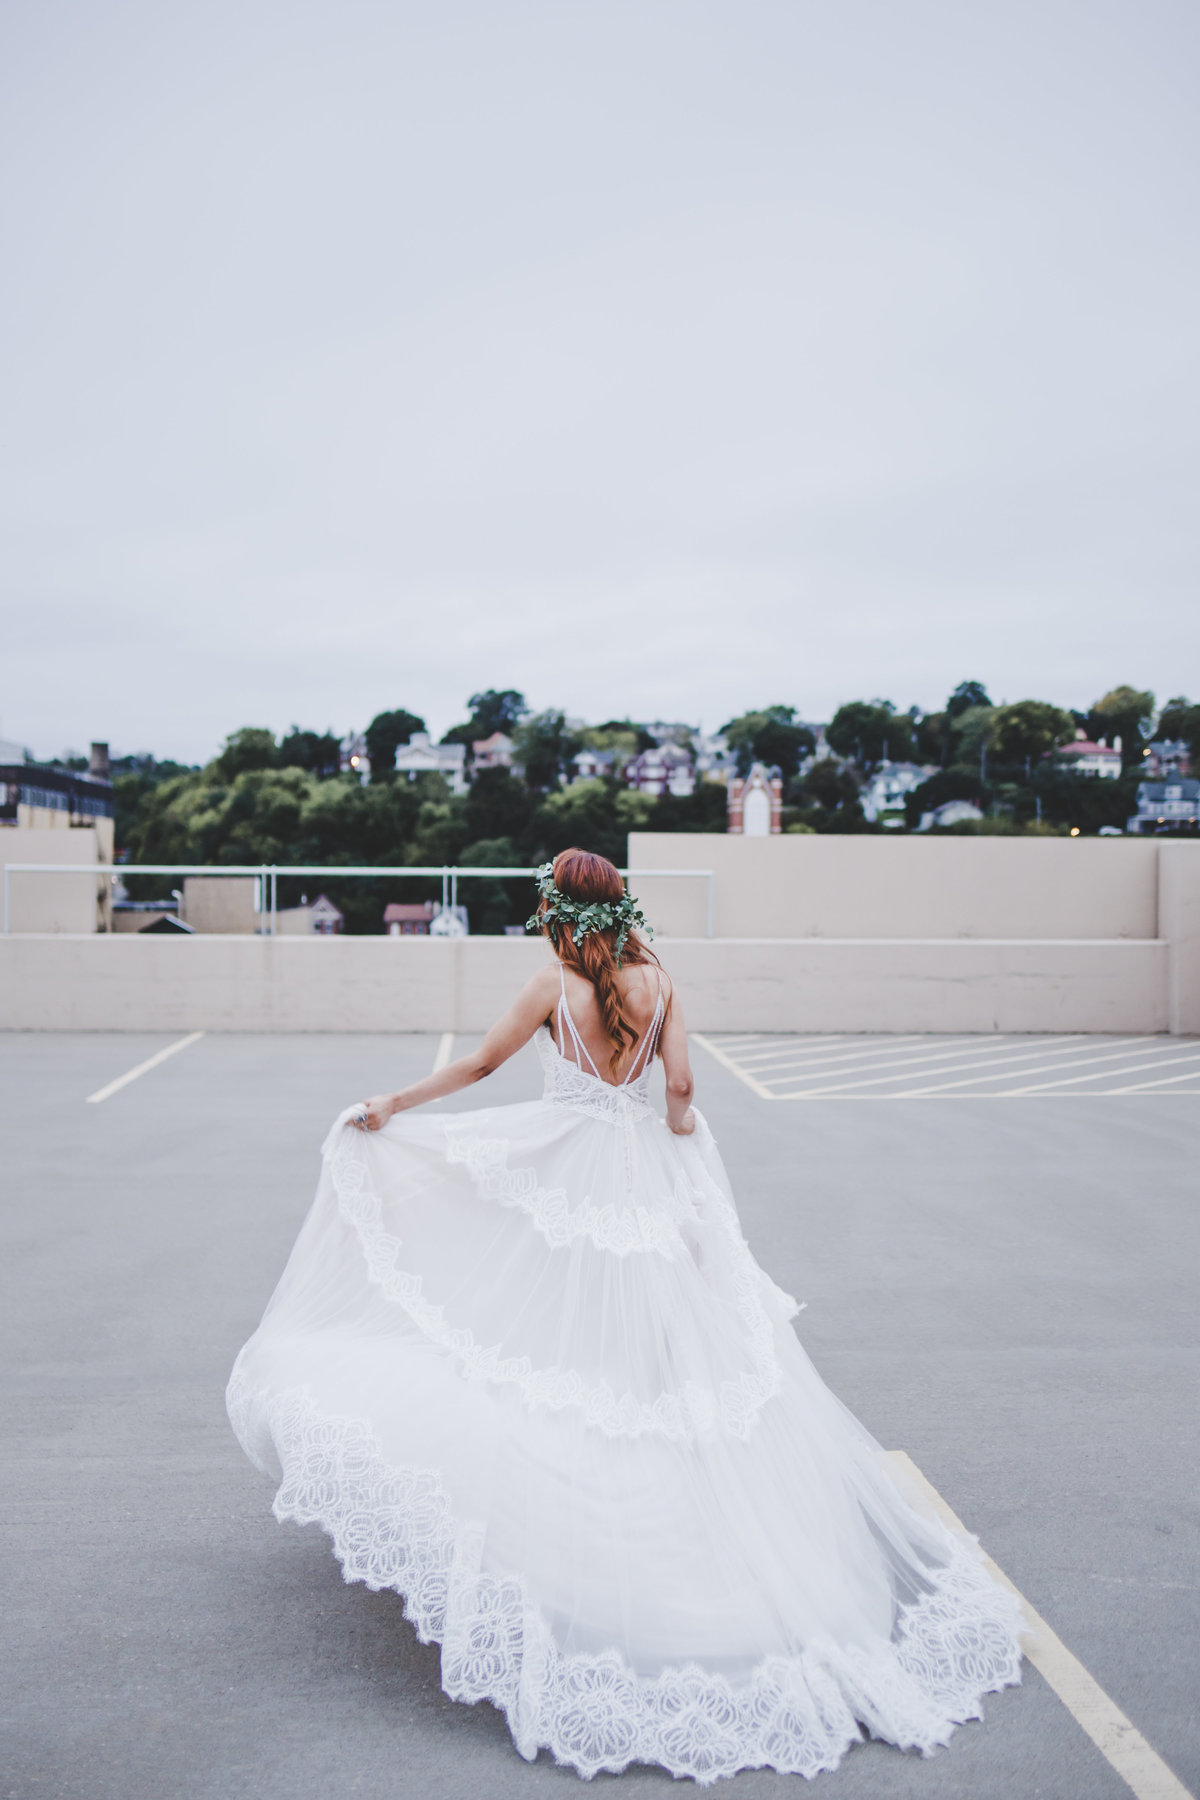 FF6 - White Dress on Parking Ramp (82 of 145)